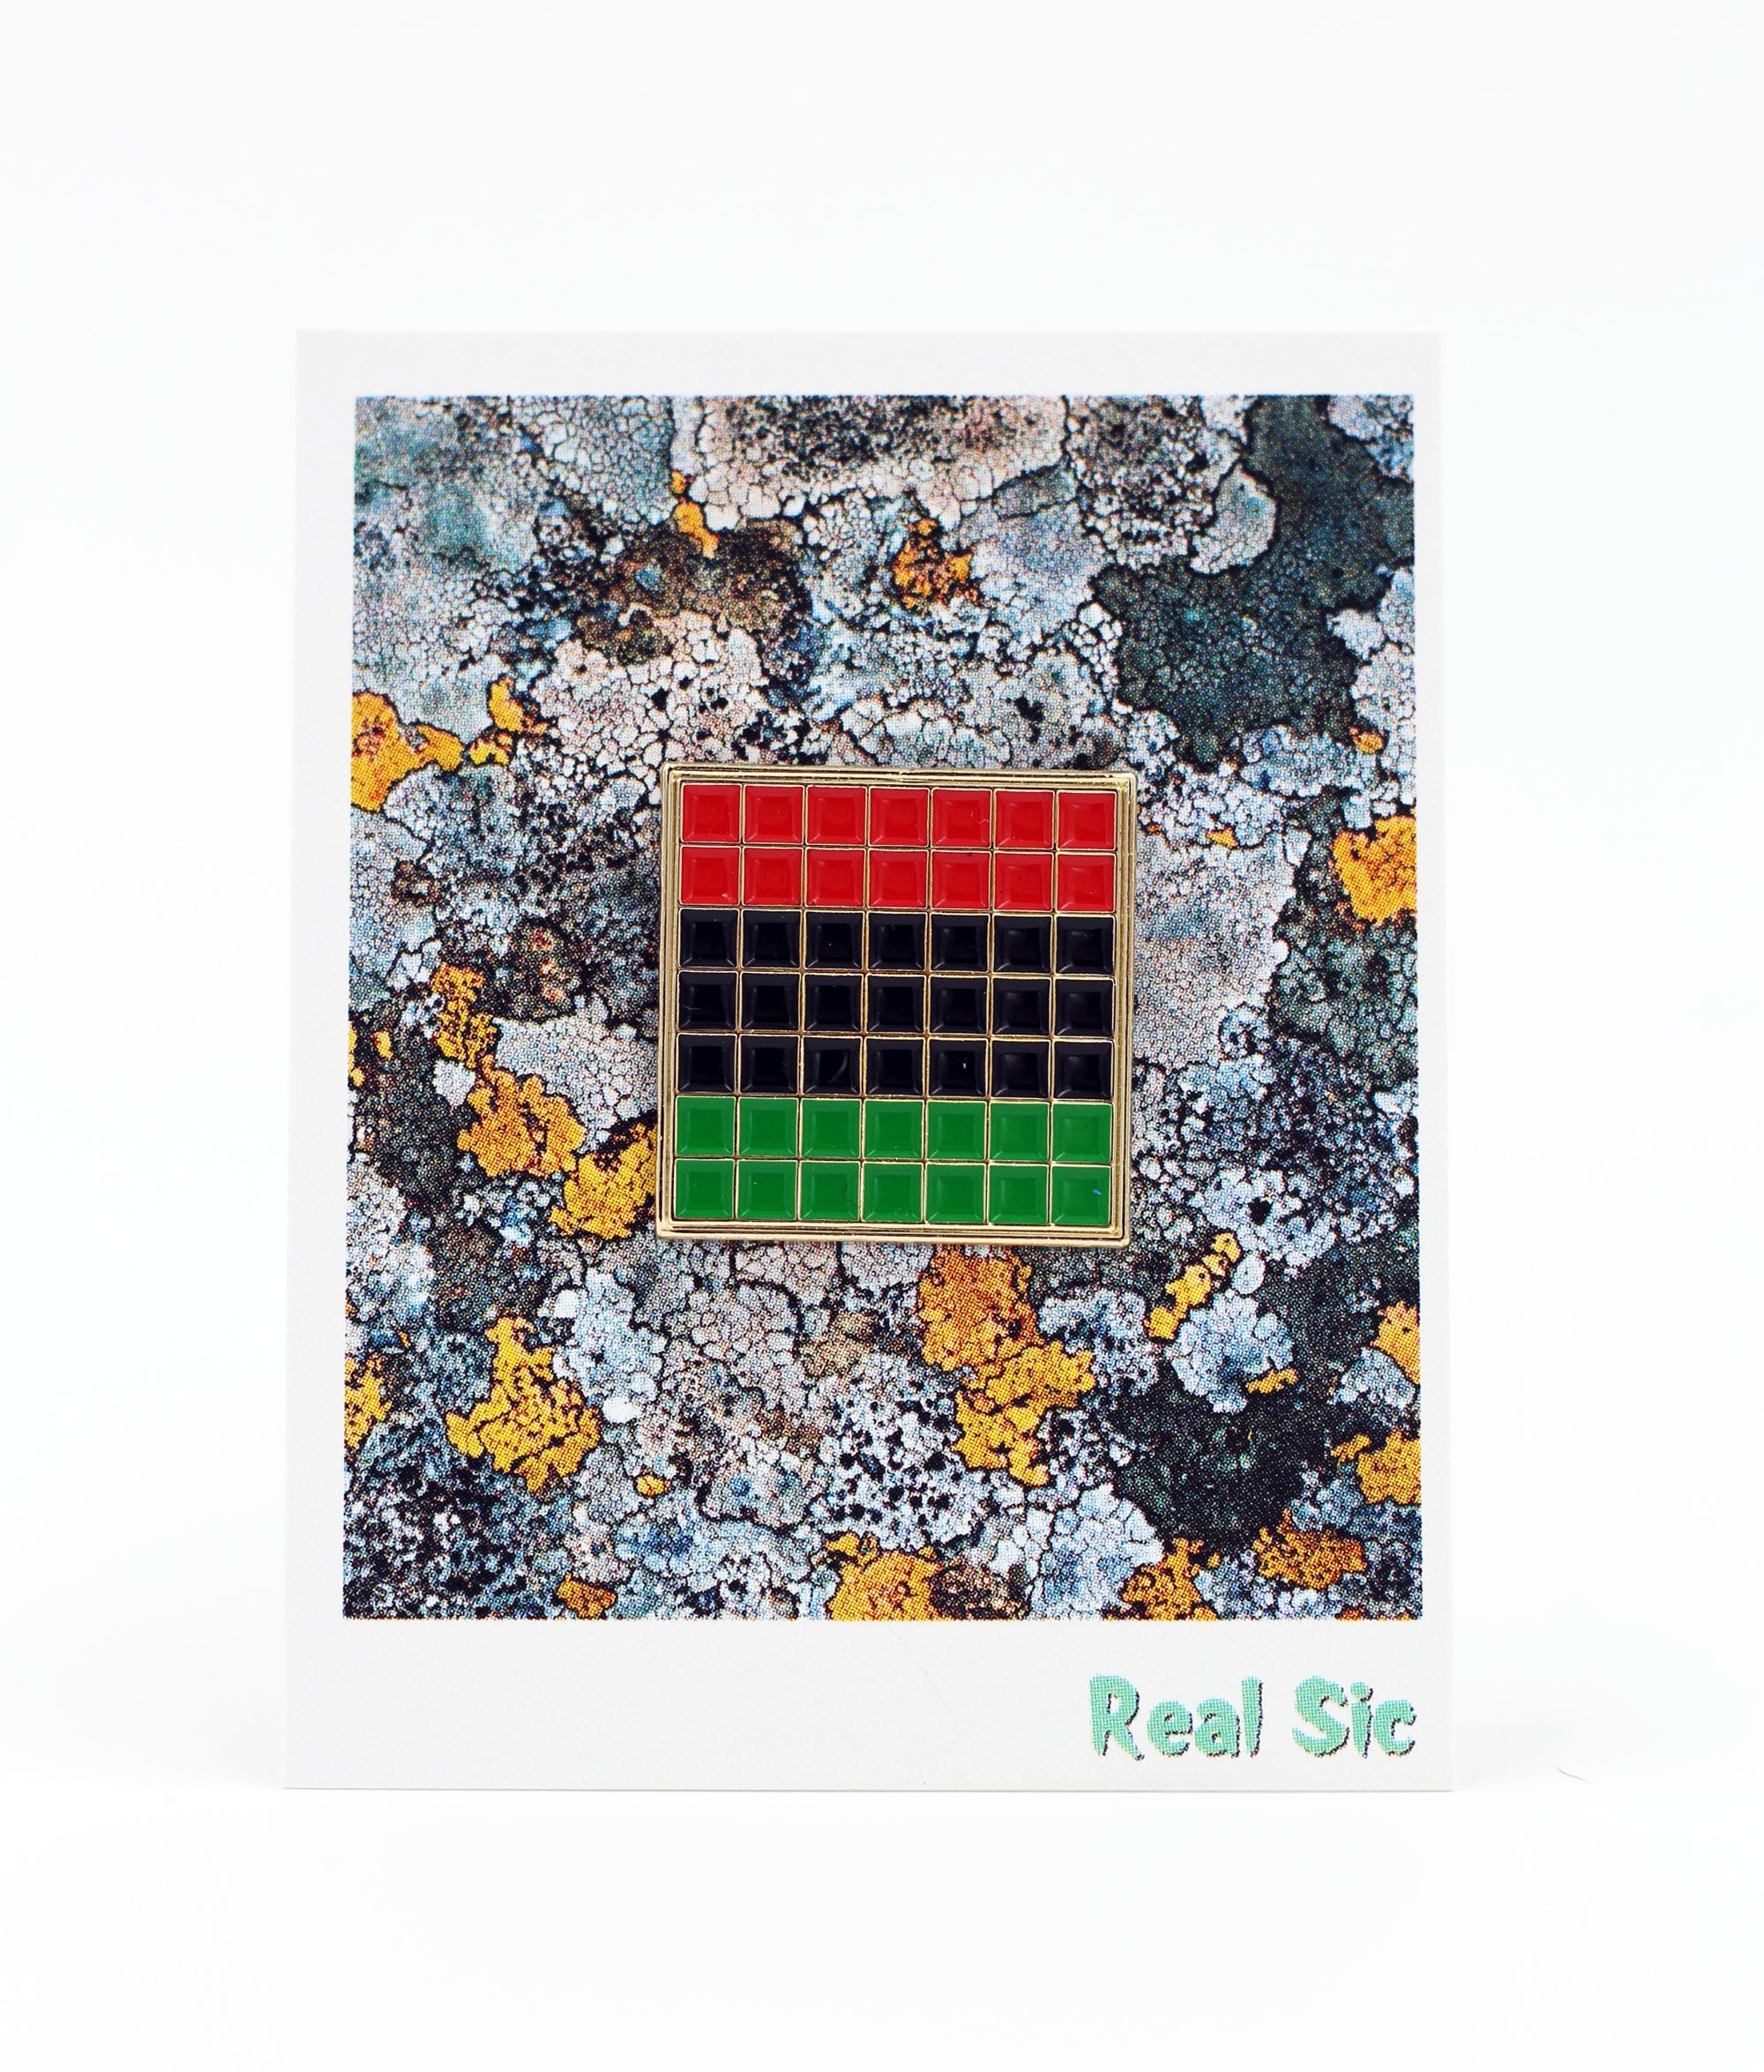 Pan African Pride Flag Enamel Pin - Black Lives Matter Lapel Pin Collection by Real Sic - Premium Grid Pins Series by Real Sic (Image #2)